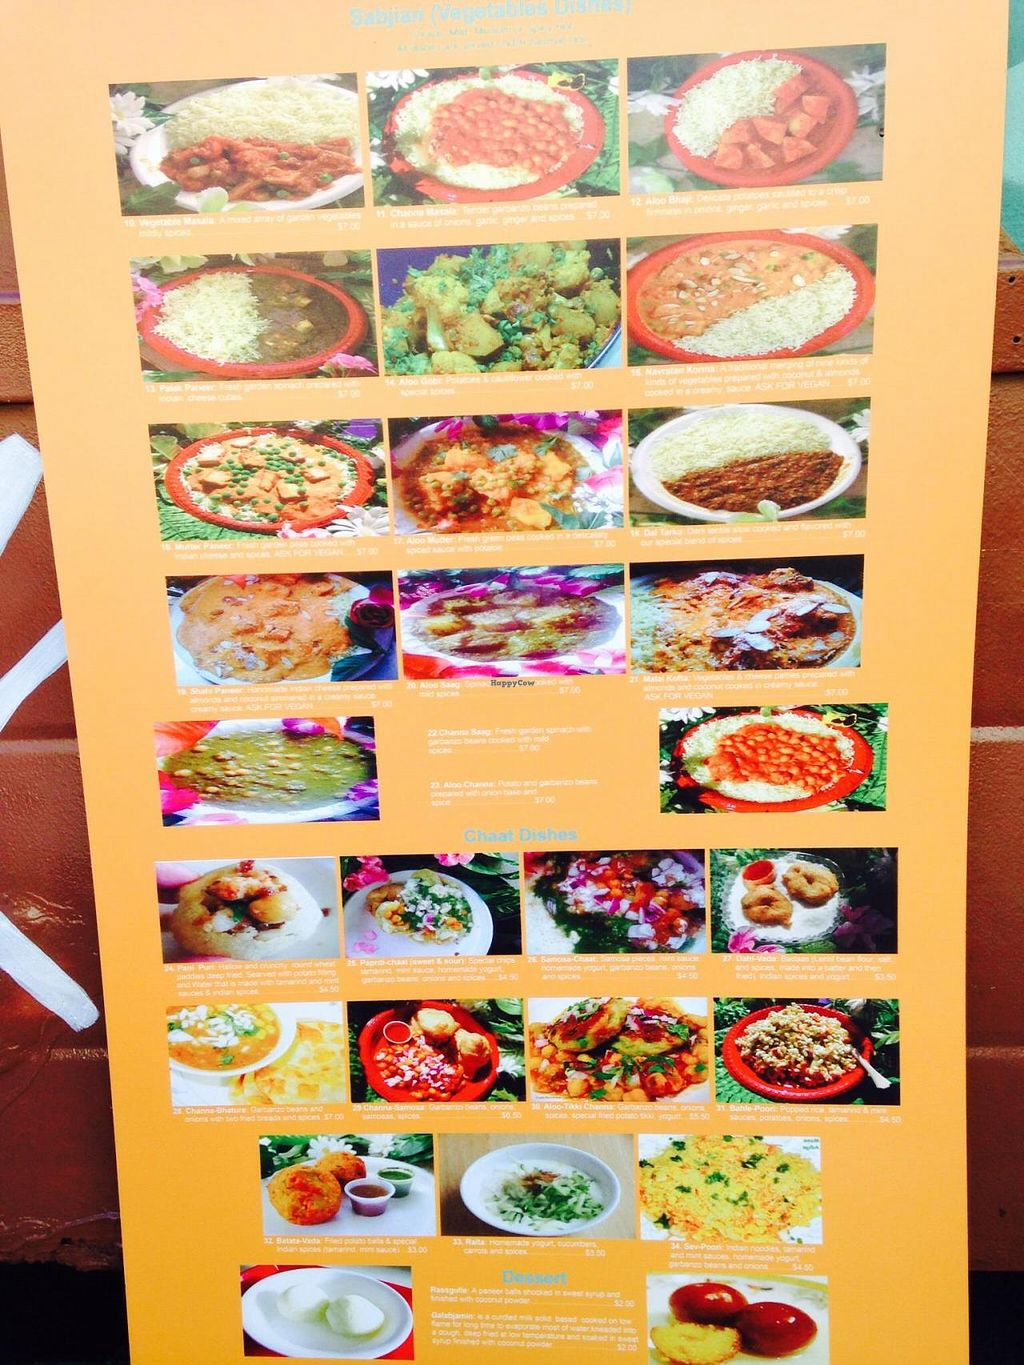 """Photo of Bombay Chaat House  by <a href=""""/members/profile/cookiem"""">cookiem</a> <br/>Menu <br/> November 16, 2014  - <a href='/contact/abuse/image/18917/85831'>Report</a>"""